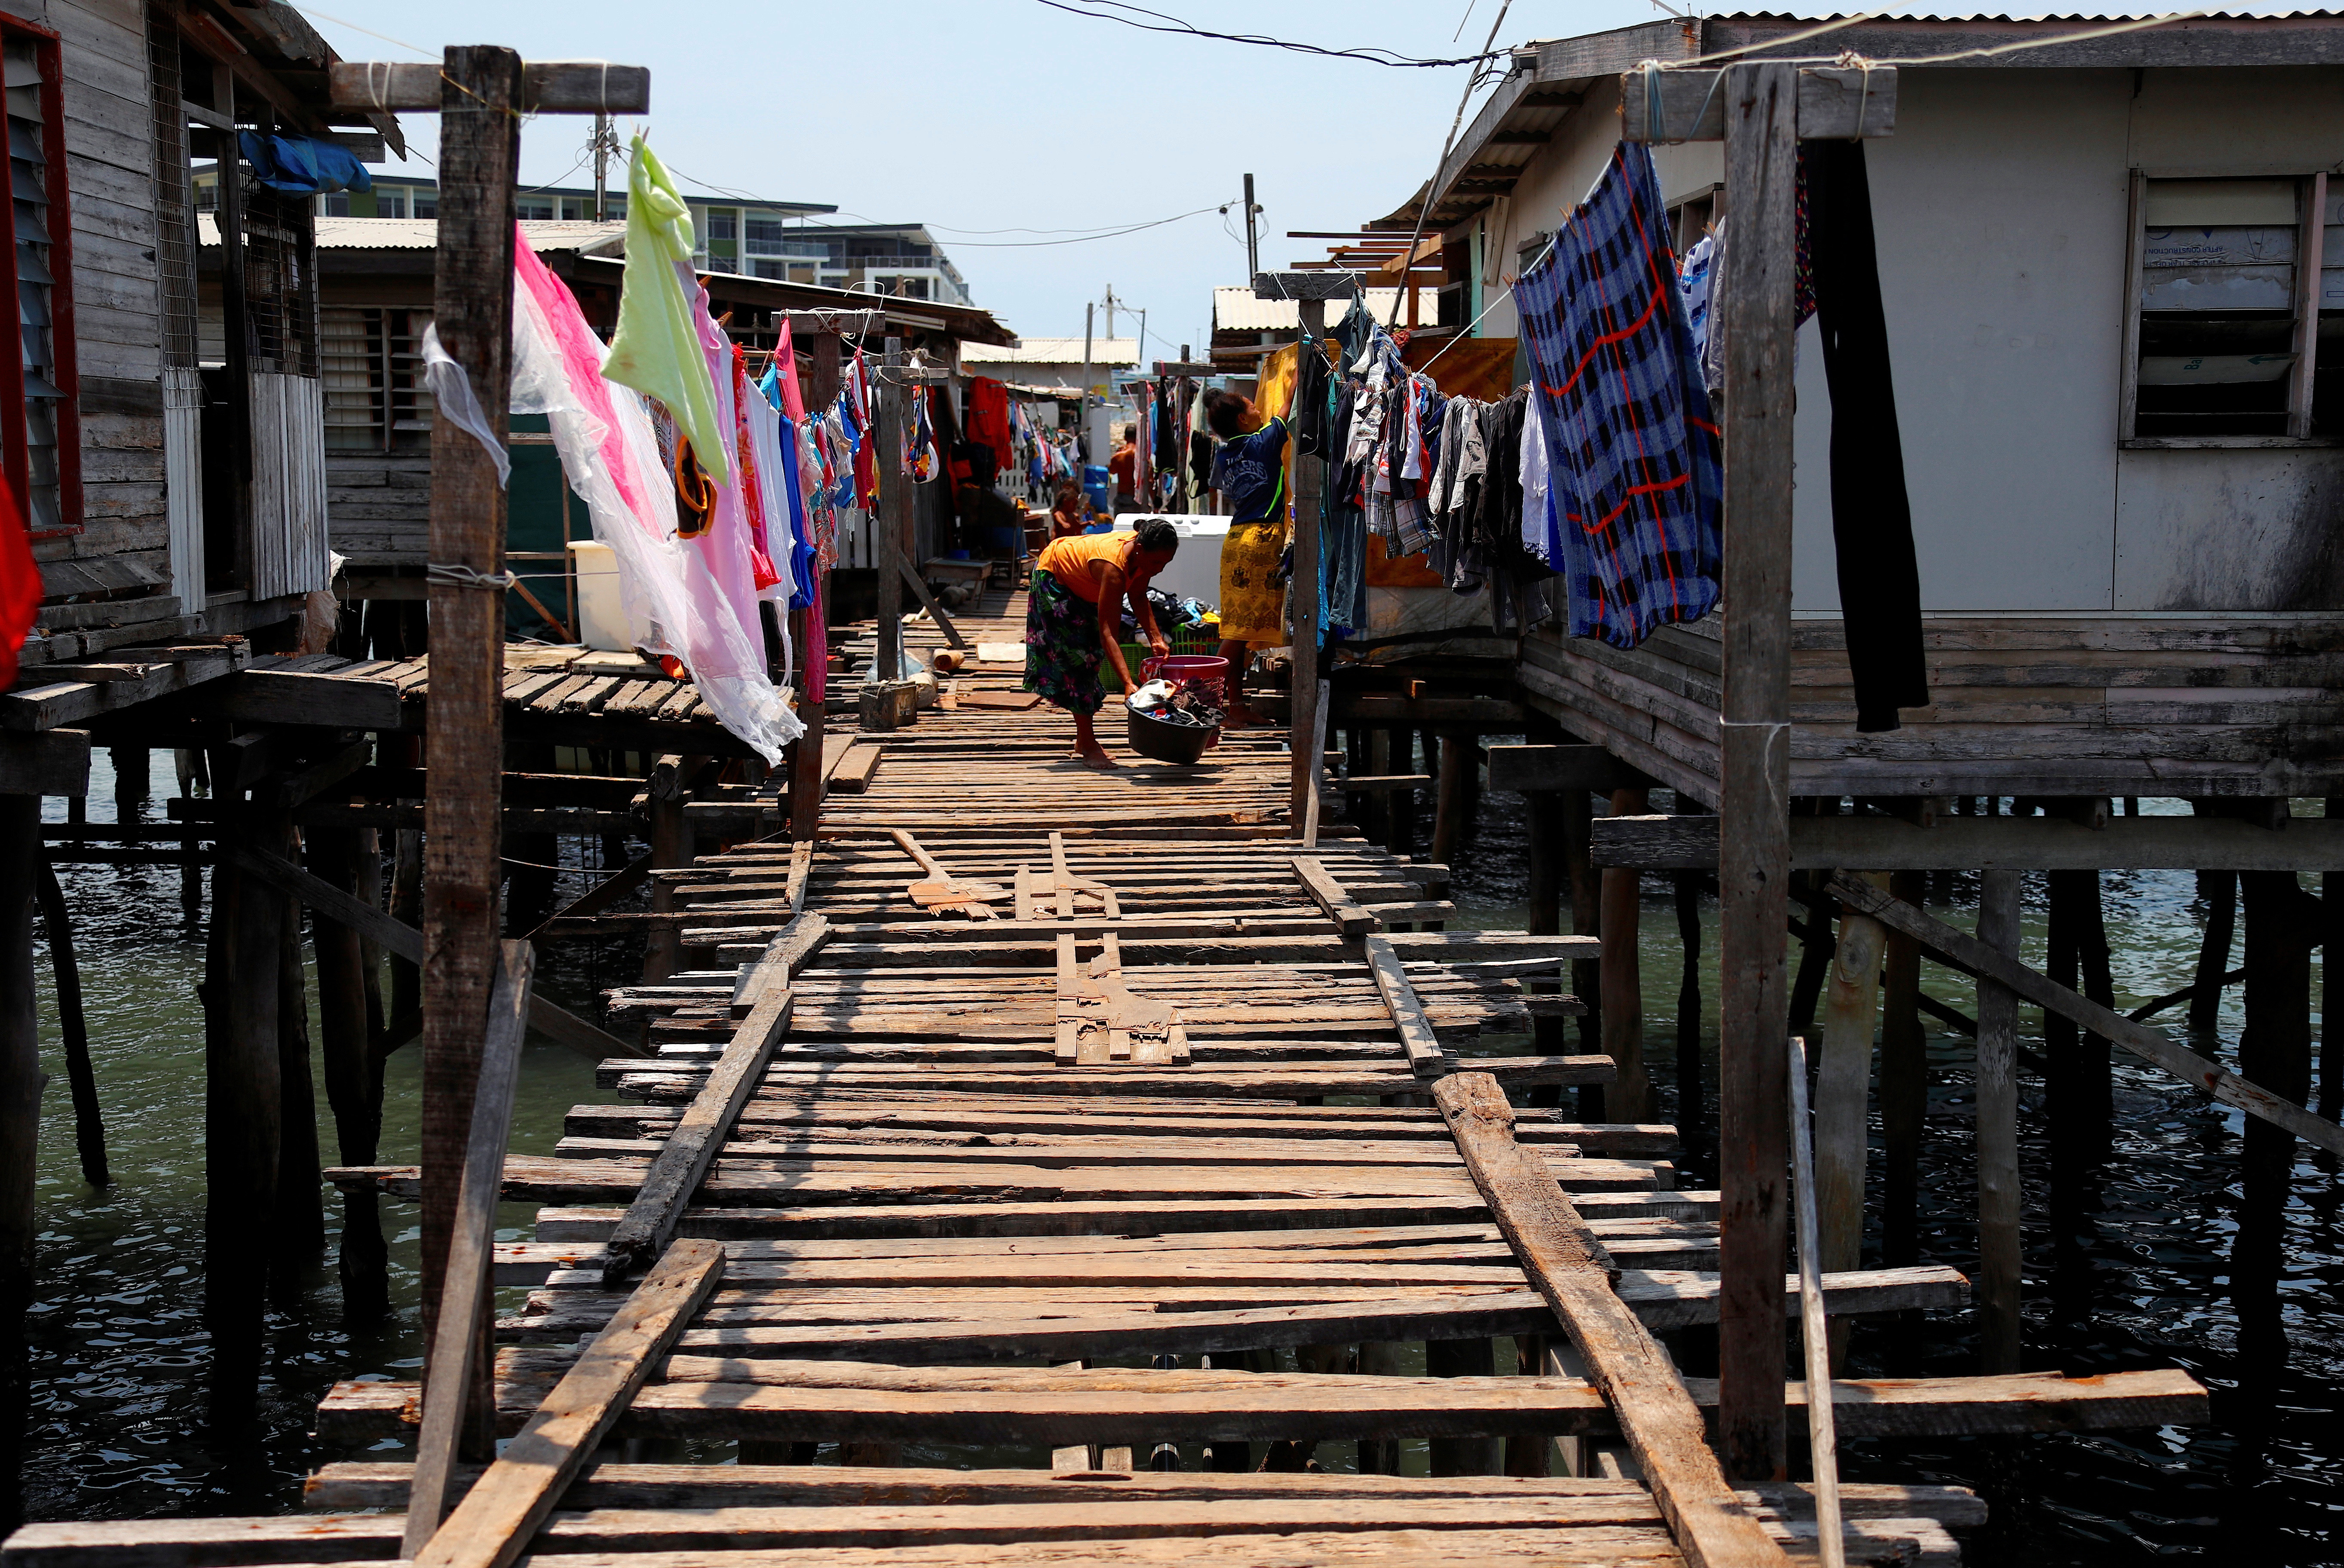 A woman washes clothes on a wooden path between stilt houses at Hanuabada Village, located in Port Moresby Harbour, Papua New Guinea, November 19, 2018. Picture taken November 19, 2018.       REUTERS/David Gray - RC1542BE3E00